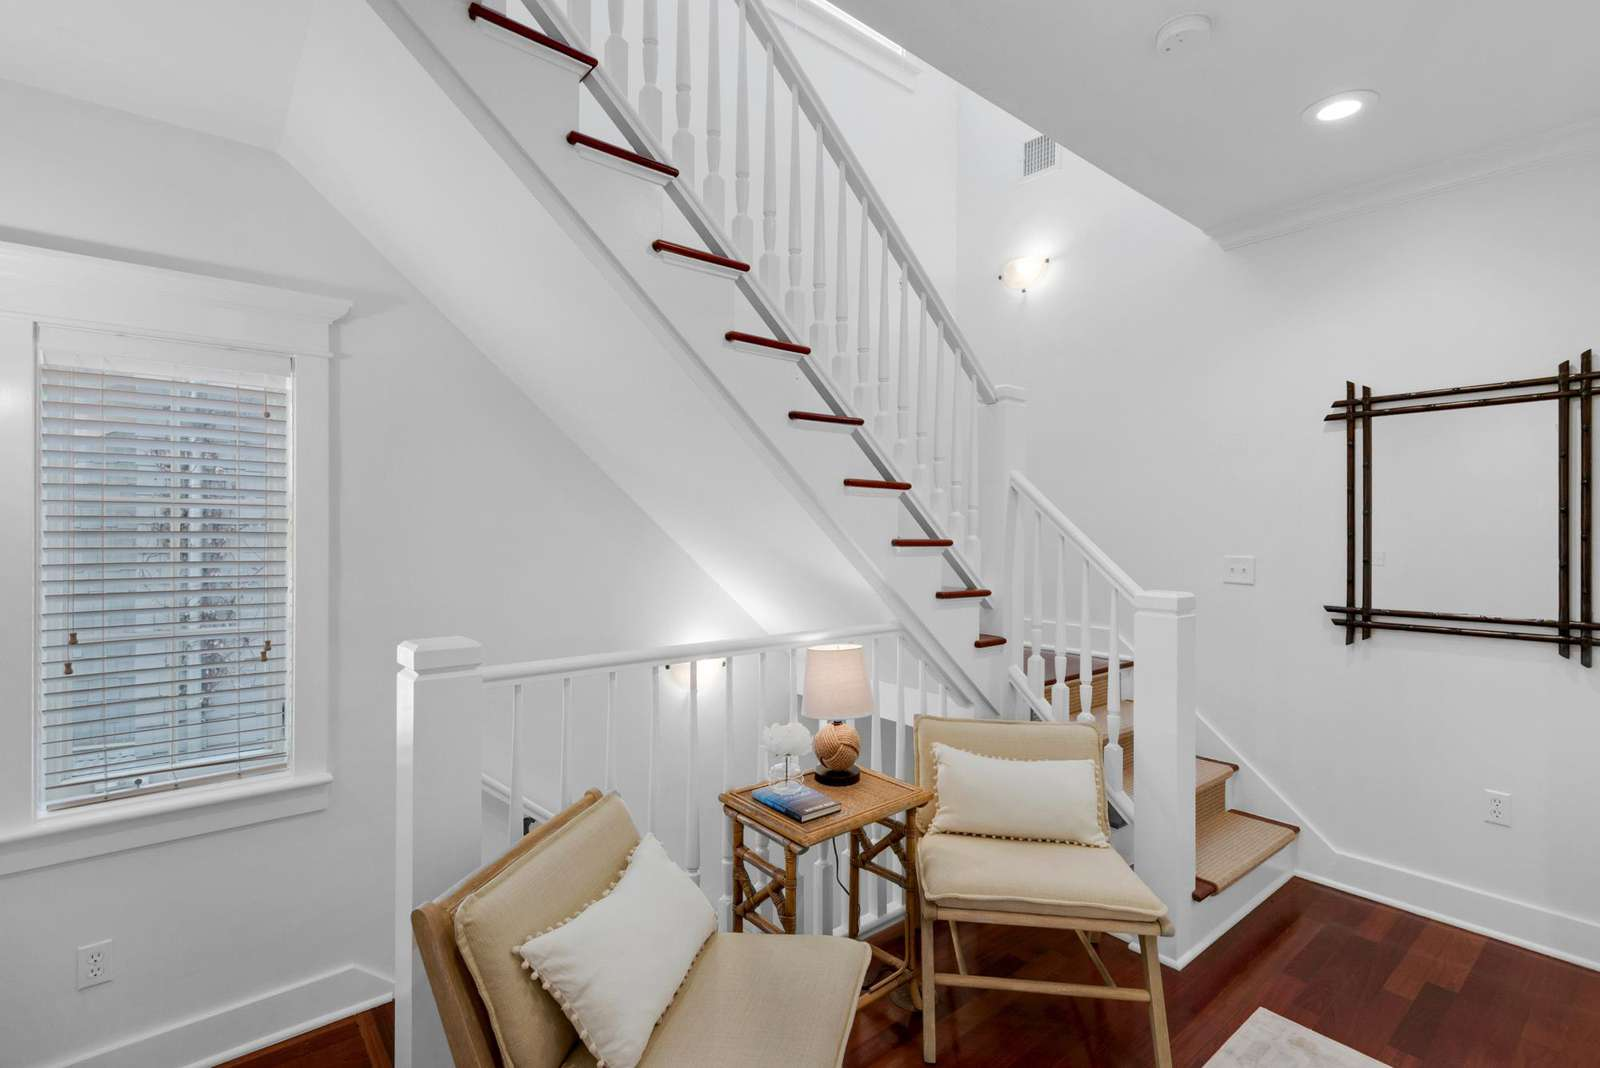 Cozy Seating Area and Stairway to Third Floor